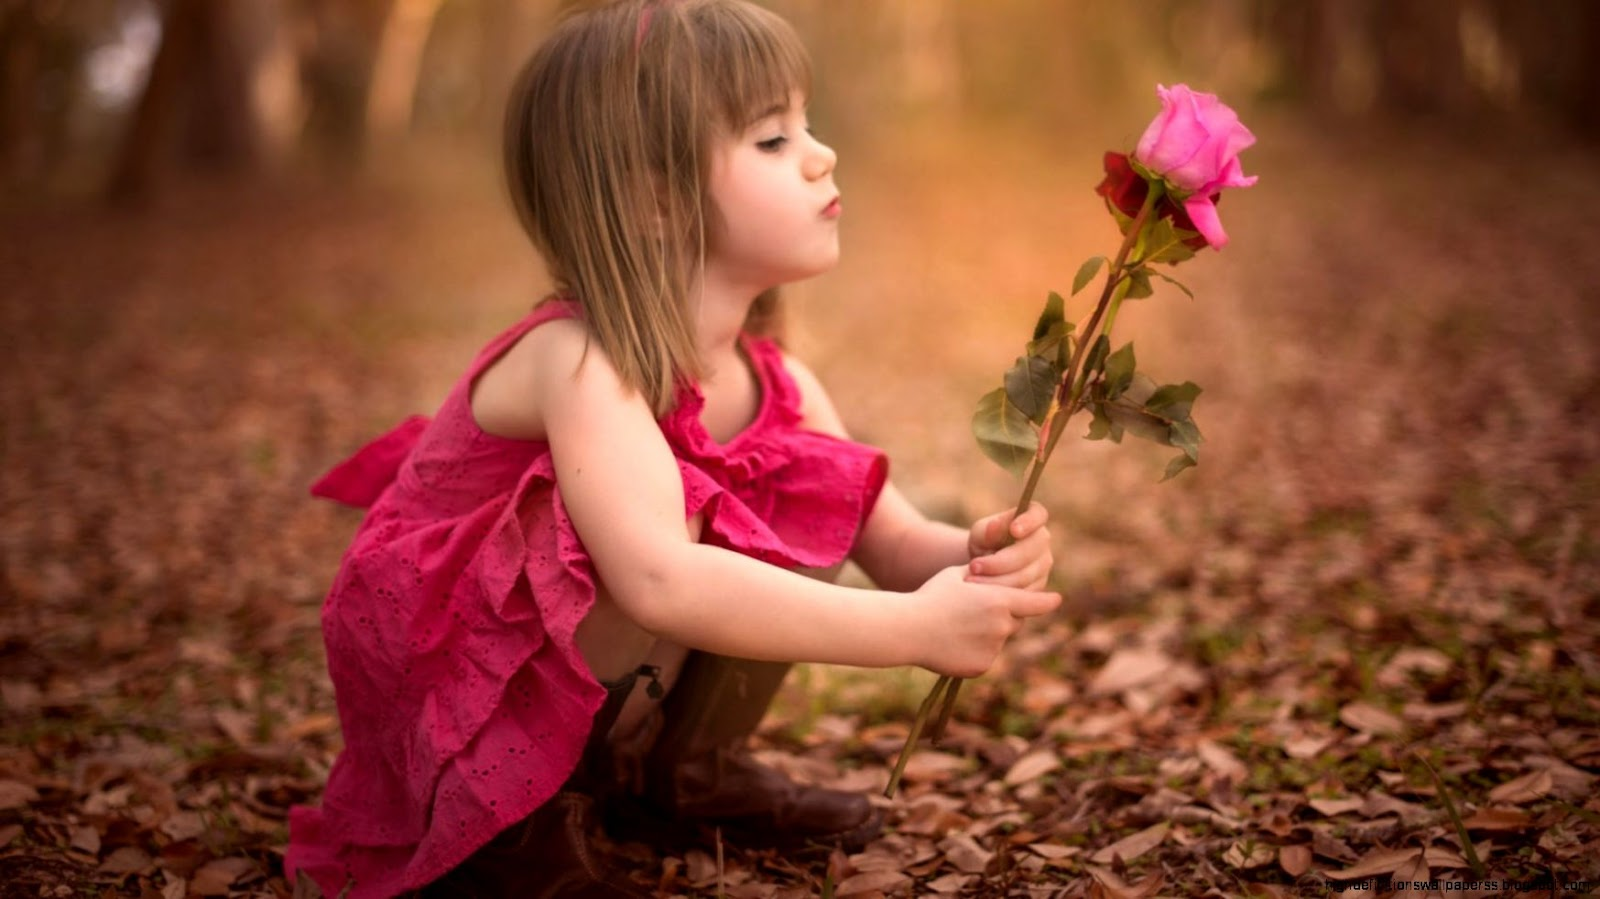 Little Girl Kids With Flowers Hd Wallpaper High Definitions Wallpapers